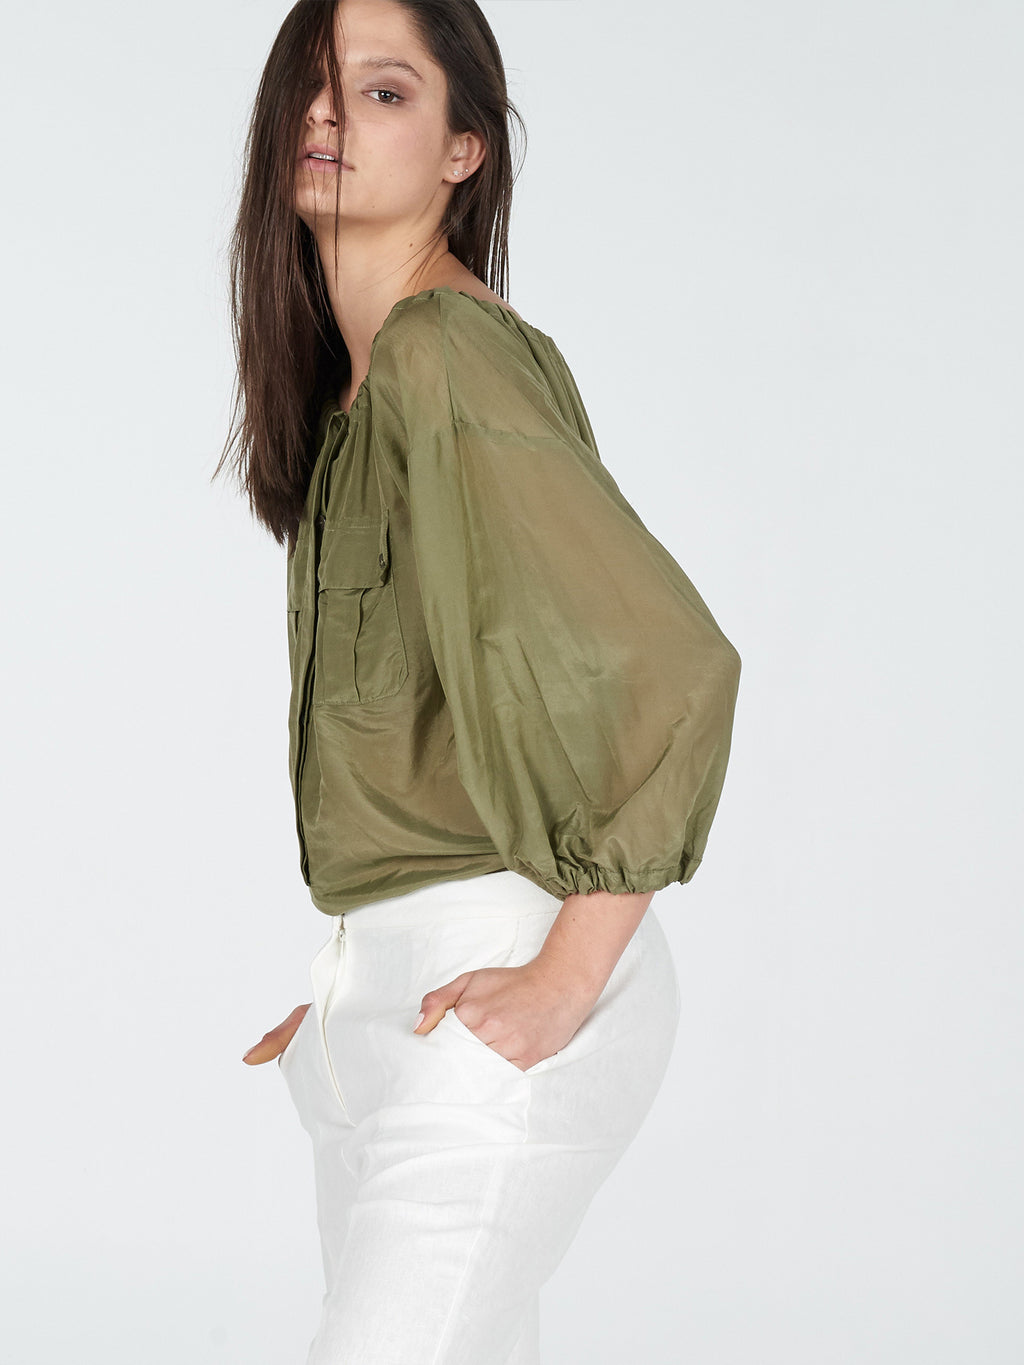 ZOE KRATZMANN - Panel Top online at PAYA boutique